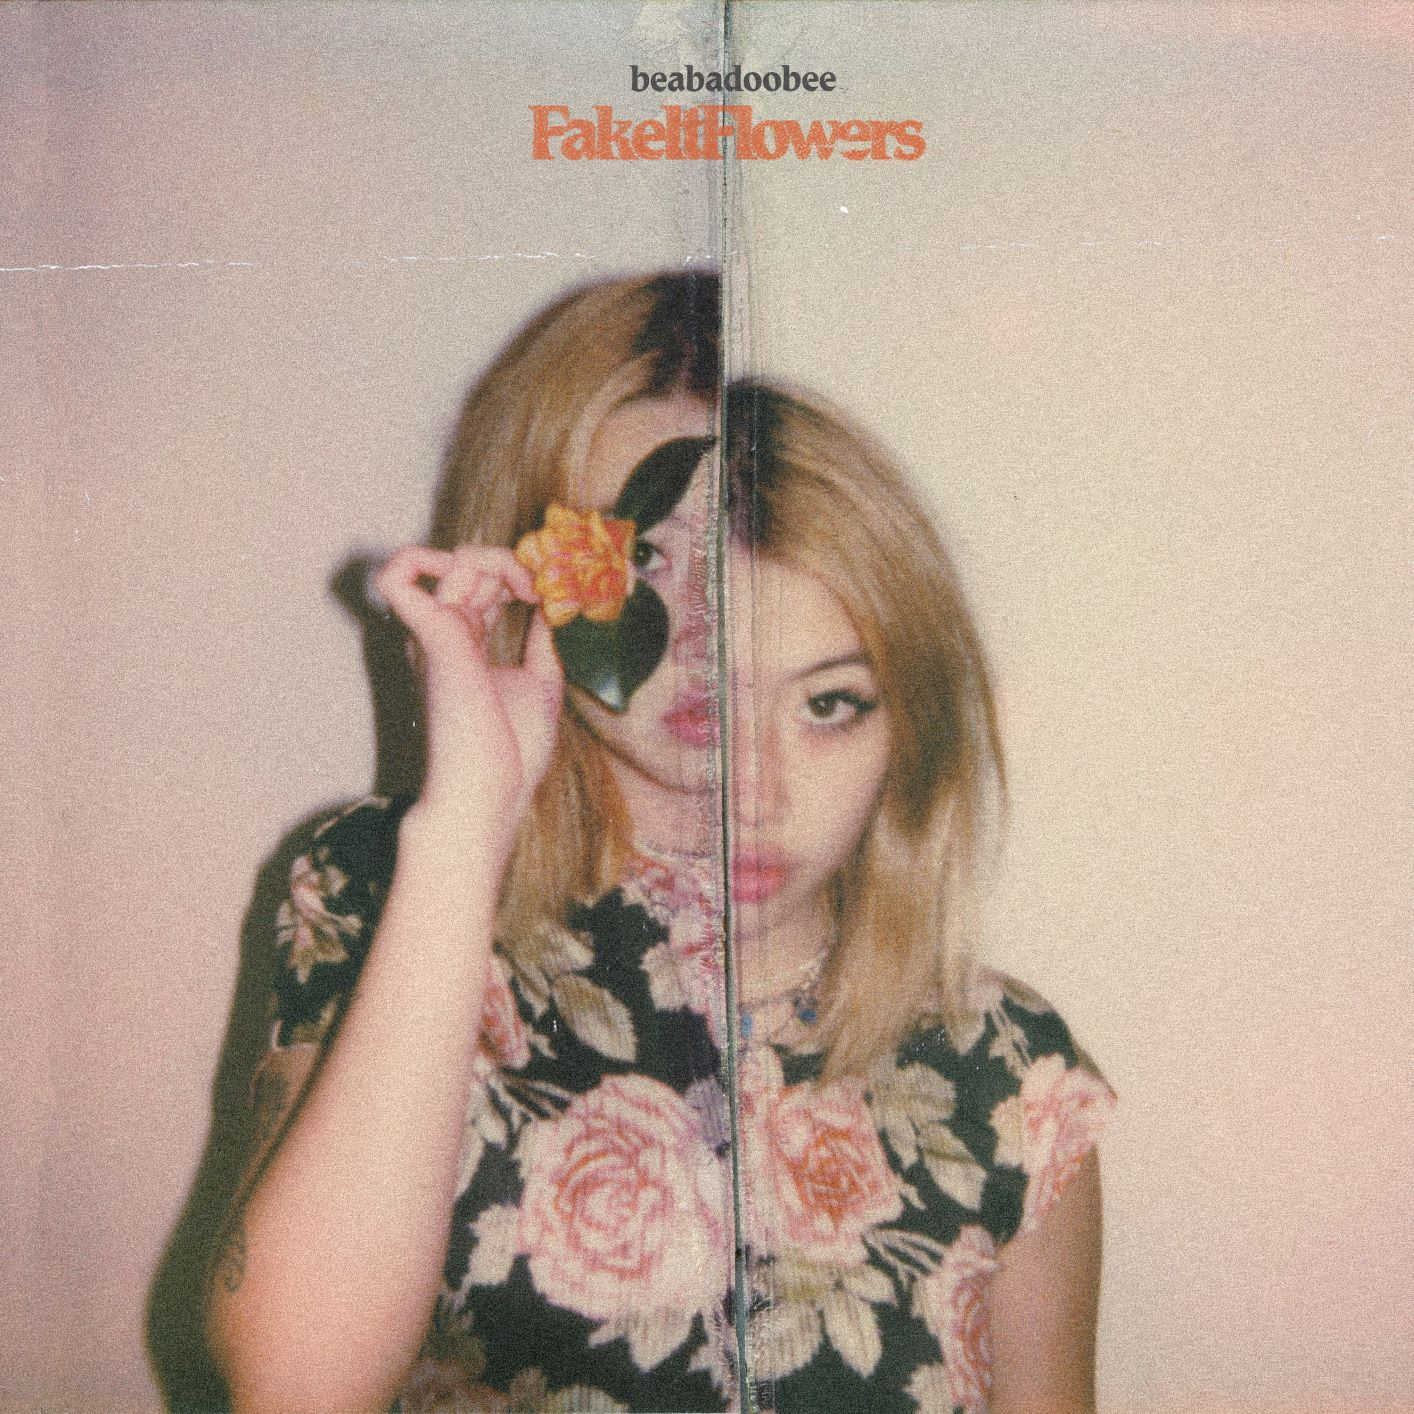 Fake It Flowers [LP]